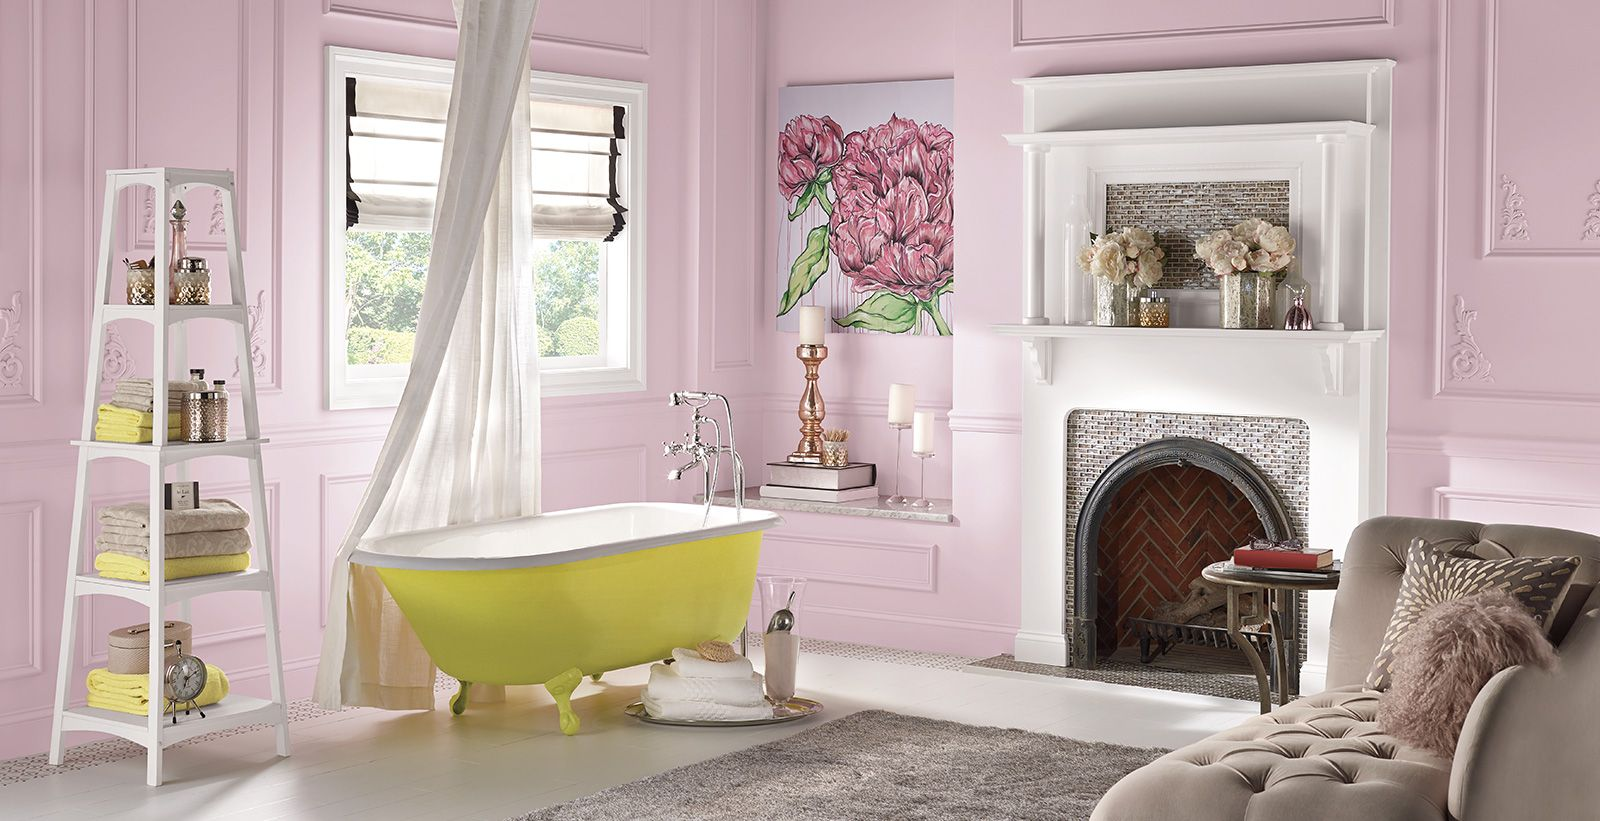 red bathroom ideas and inspirational paint colors behr on behr premium paint colors id=40074